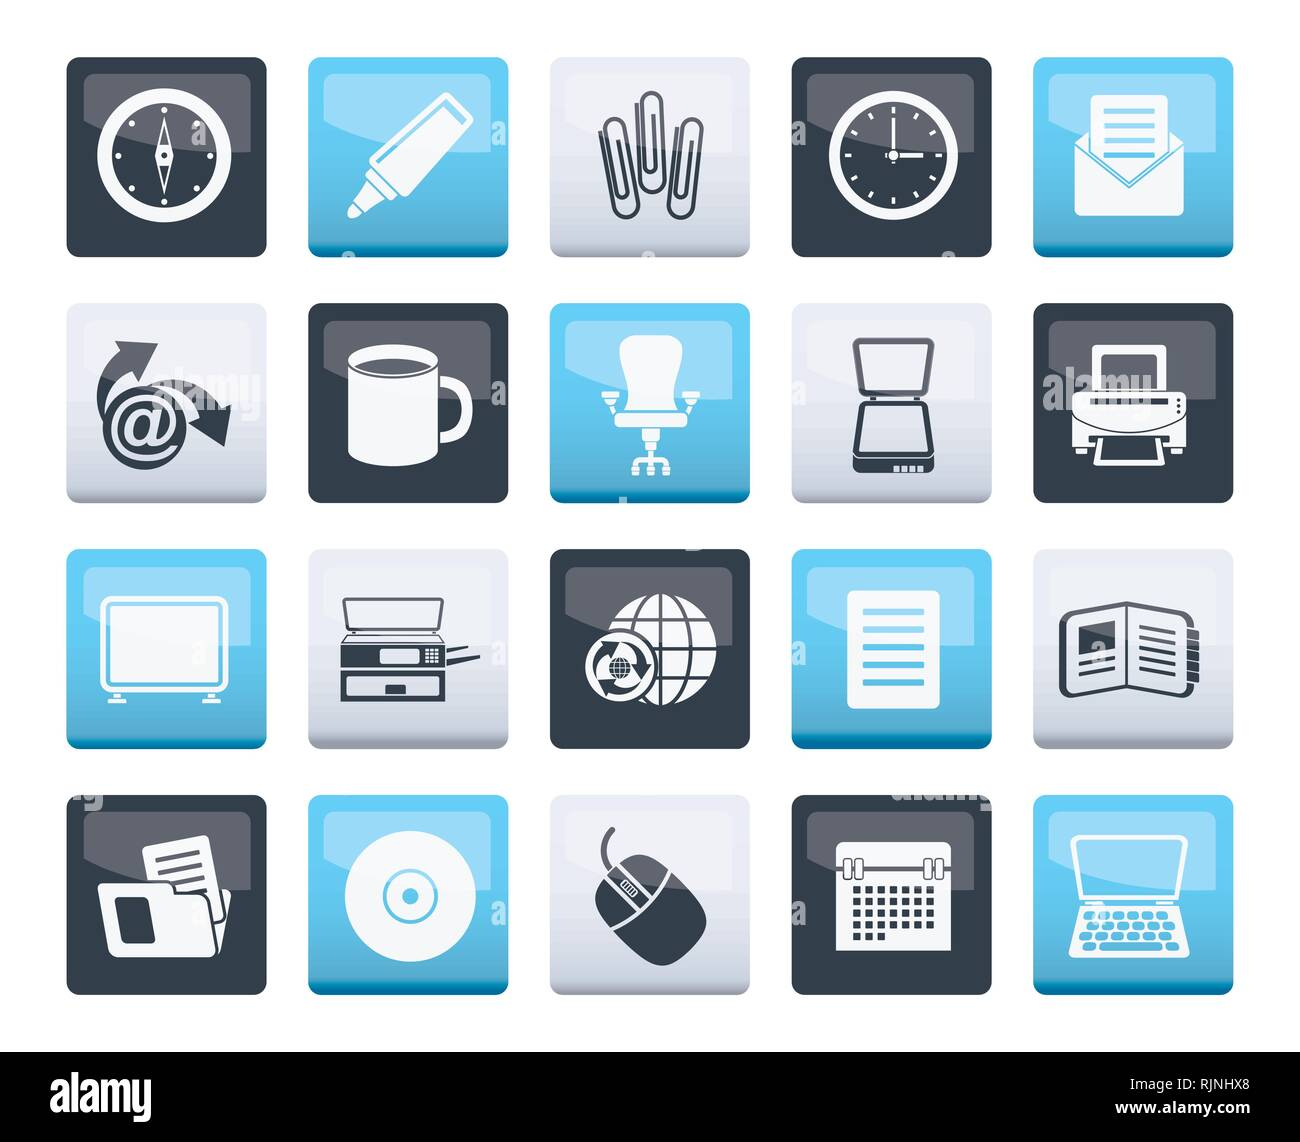 670dda0722 Business and Office tools icons over color background - vector icon set 2